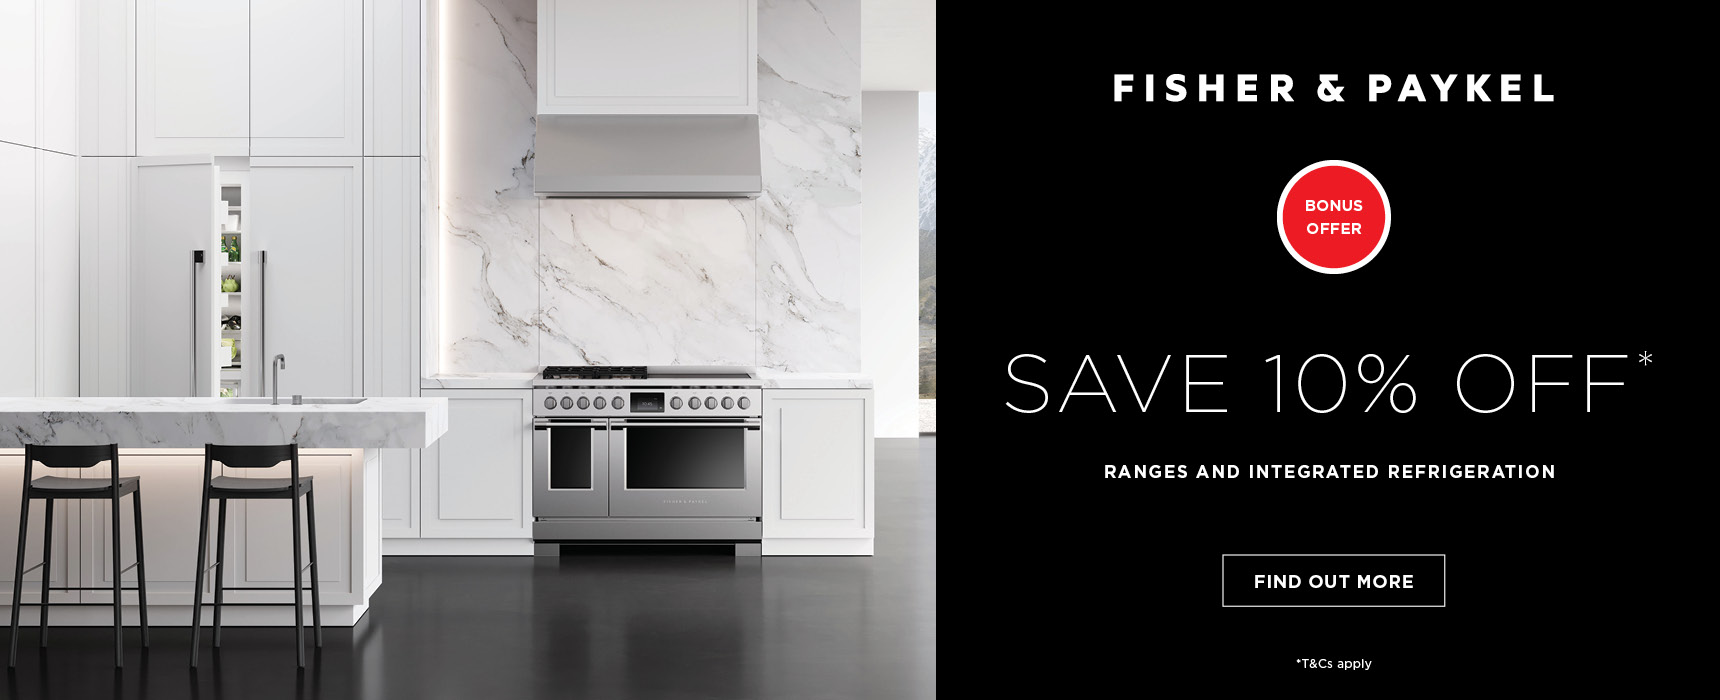 Fisher Paykel Save 10% Off Promo Banner